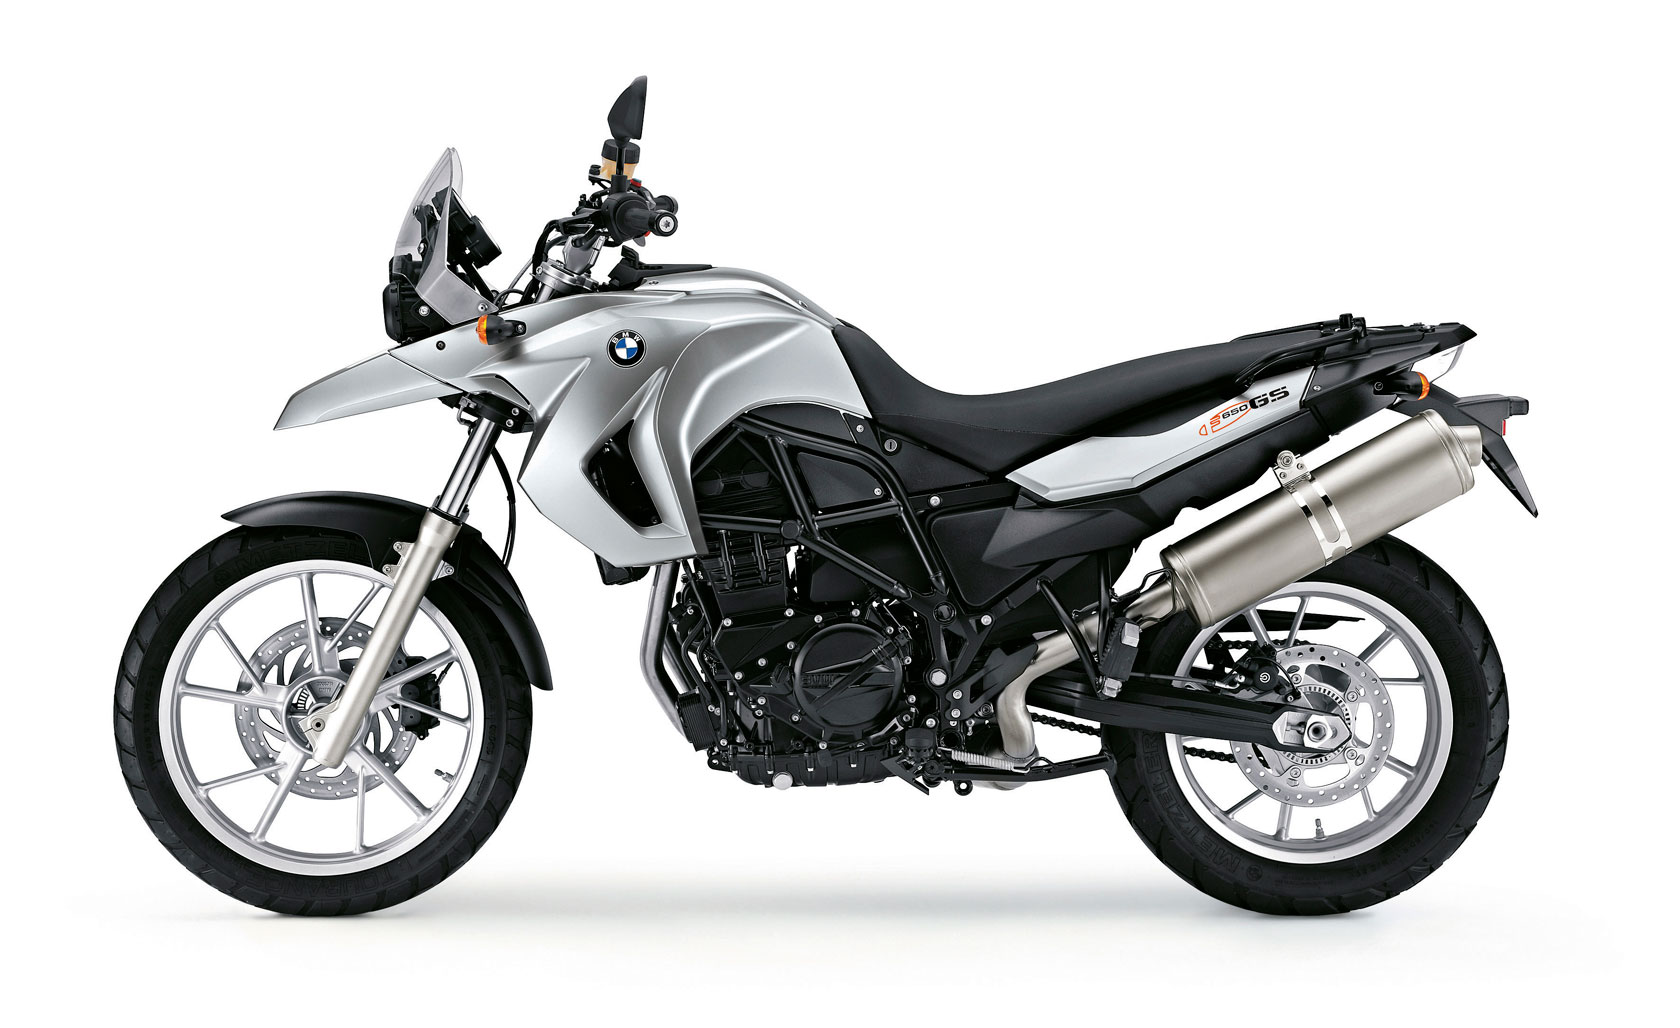 BMW G 650 GS images #8383